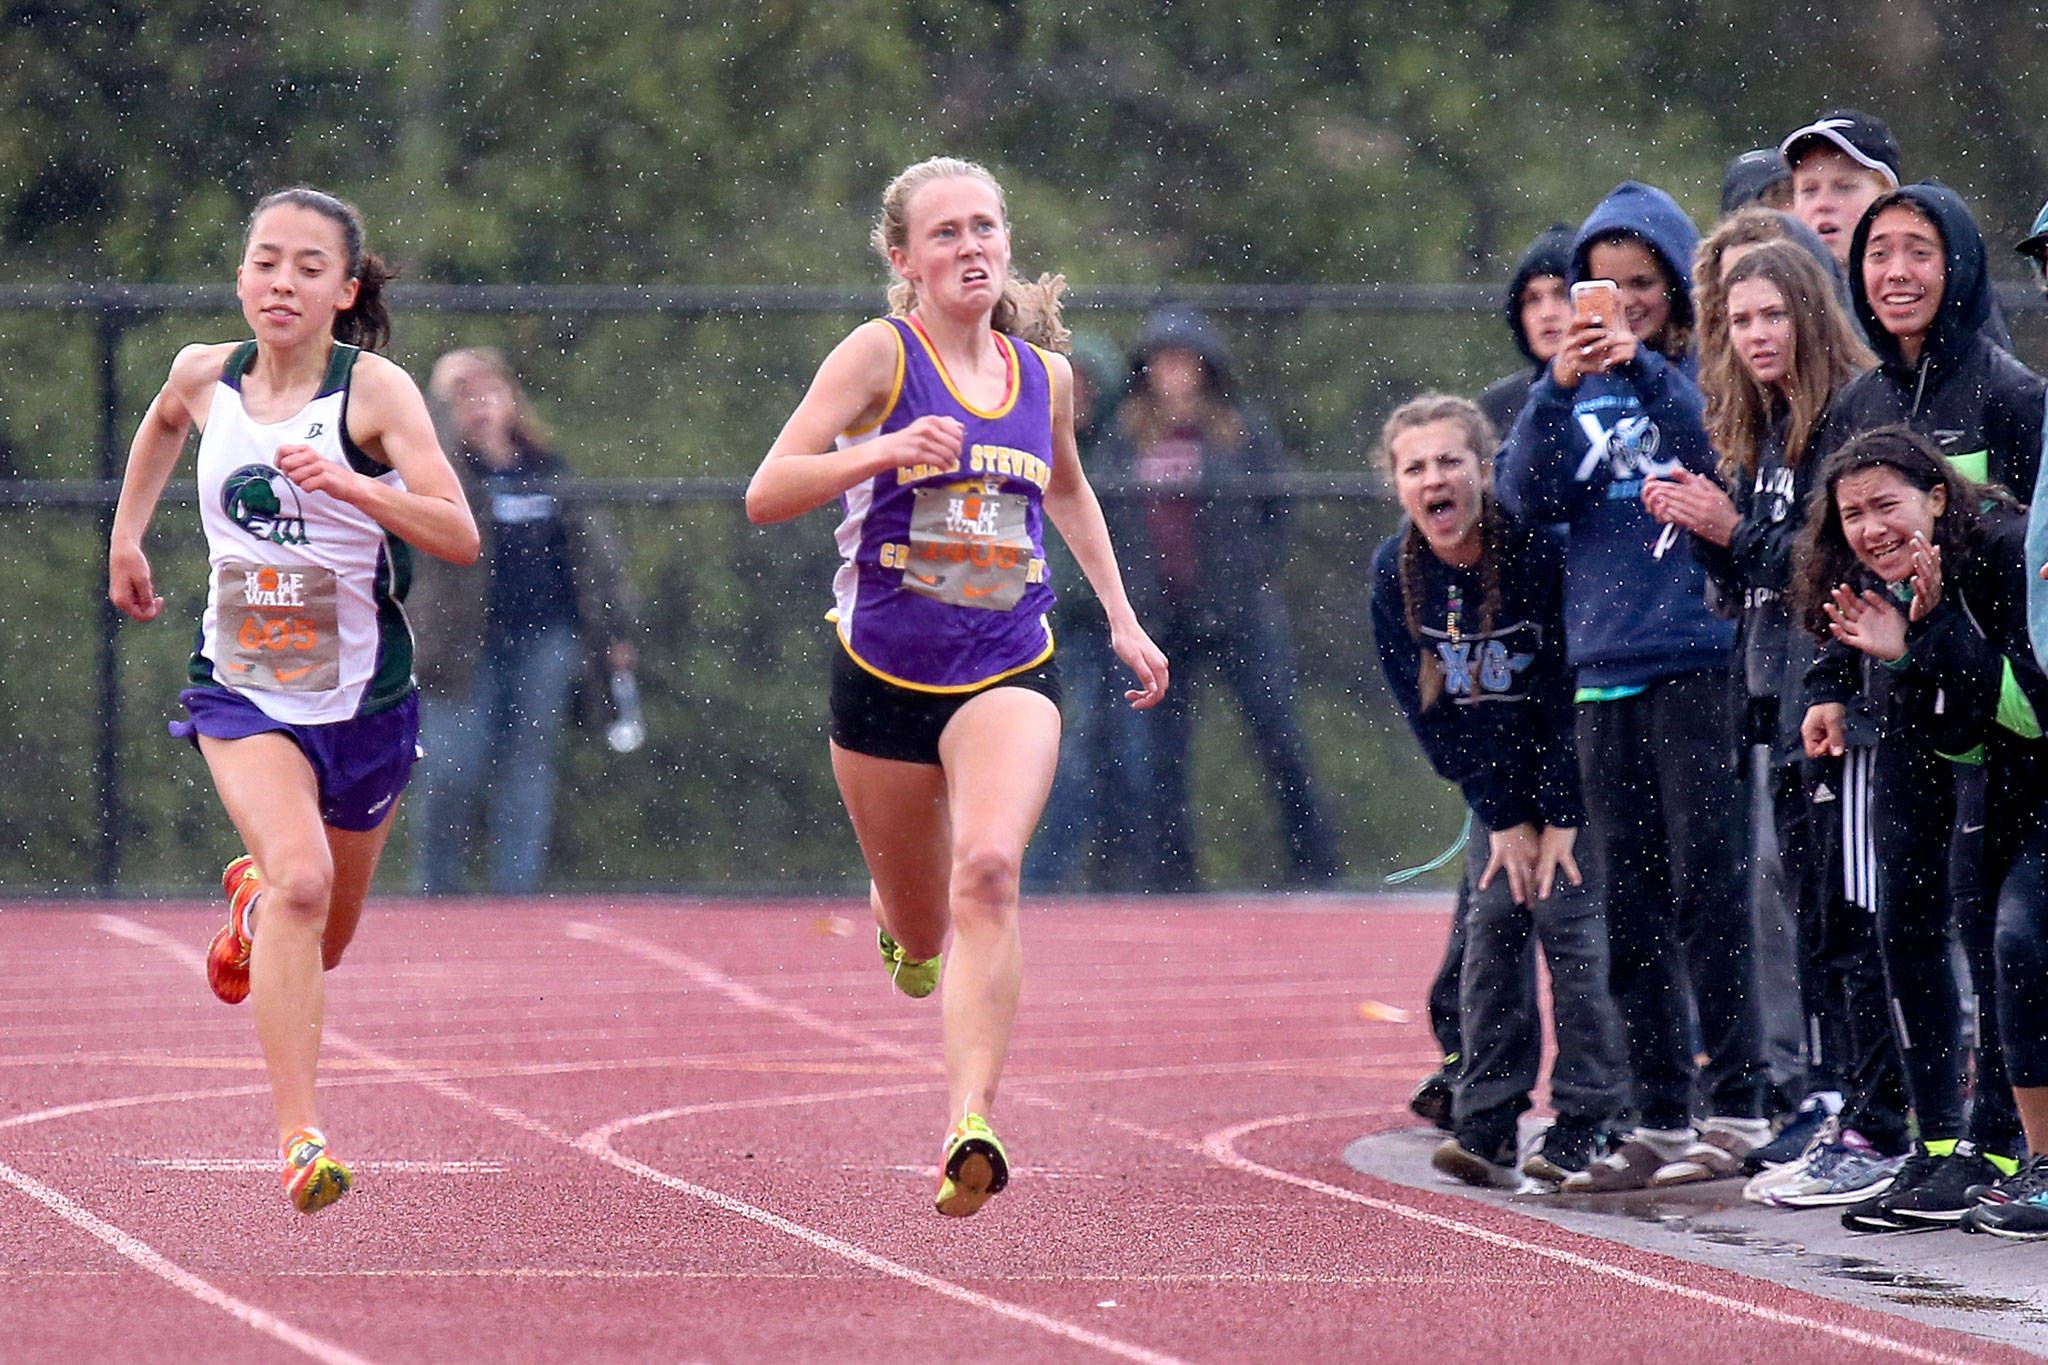 Edmonds-Woodway's Yukon Parle (left) edges out Lake Stevens' Taylor Roe for a first-place finish during the 34th annual Hole in the Wall Cross Country Invitational at Lakewood High School in Arlington on Oct. 7. (Kevin Clark / The Herald)